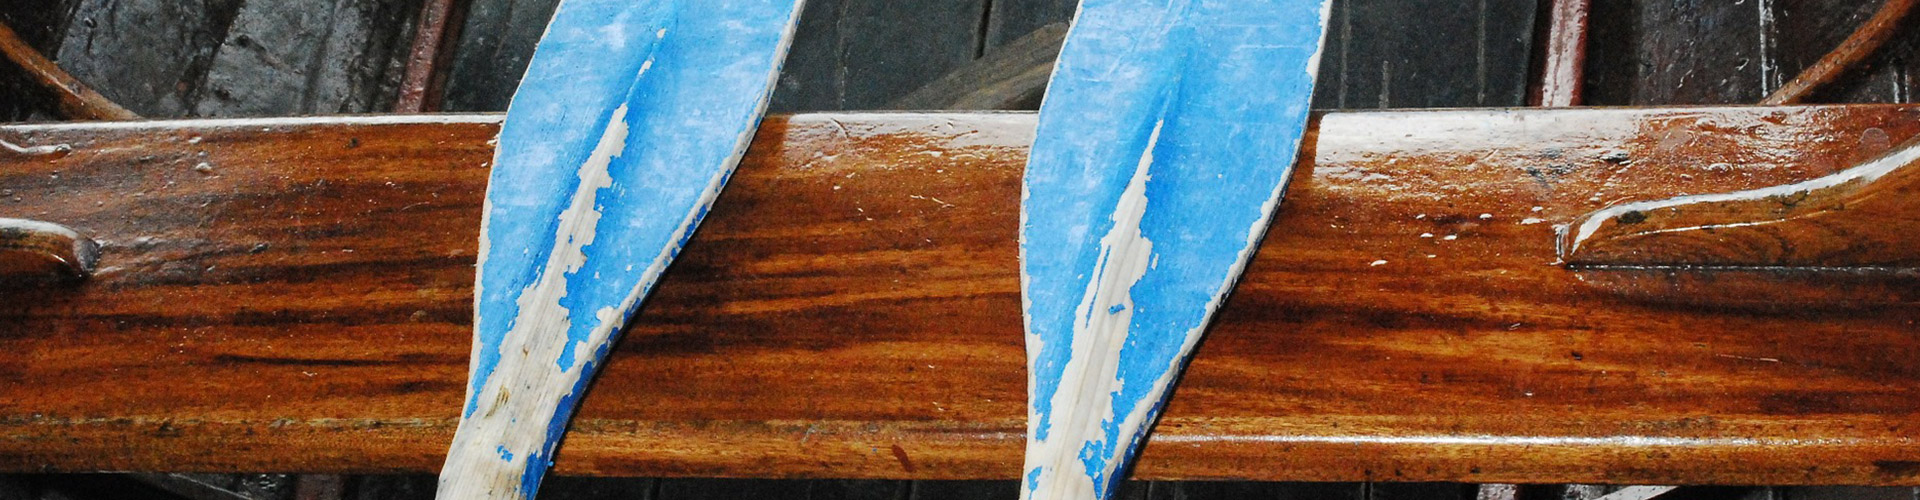 Two oars on seat of canoe